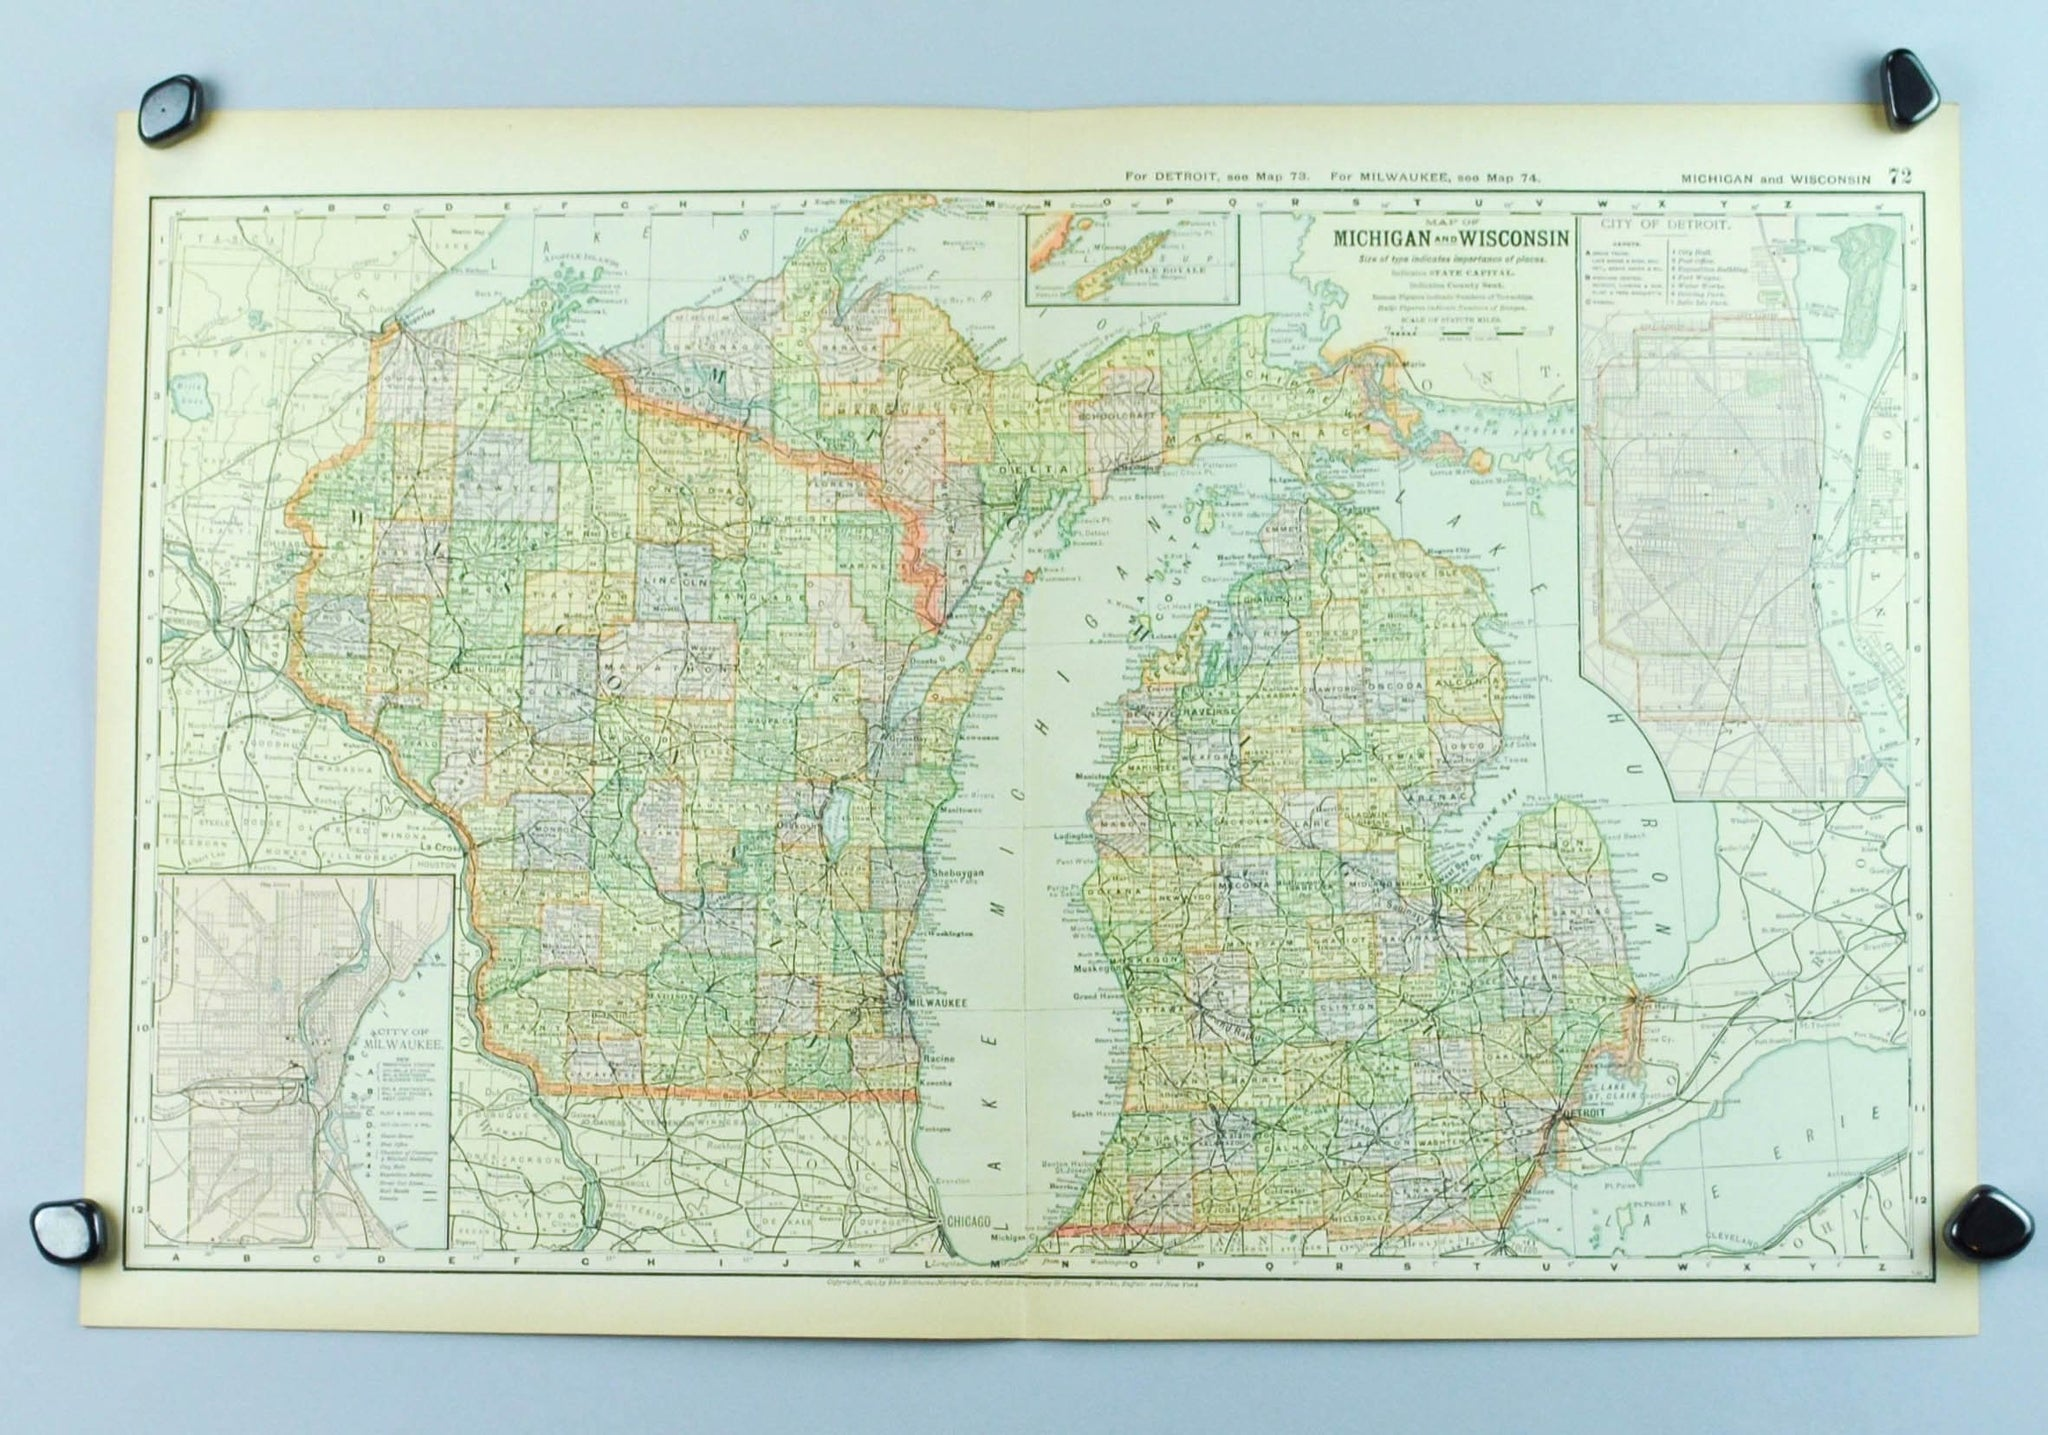 Michigan And Wisconsin Map.1891 Map Of Michigan And Wisconsin Historic Accents